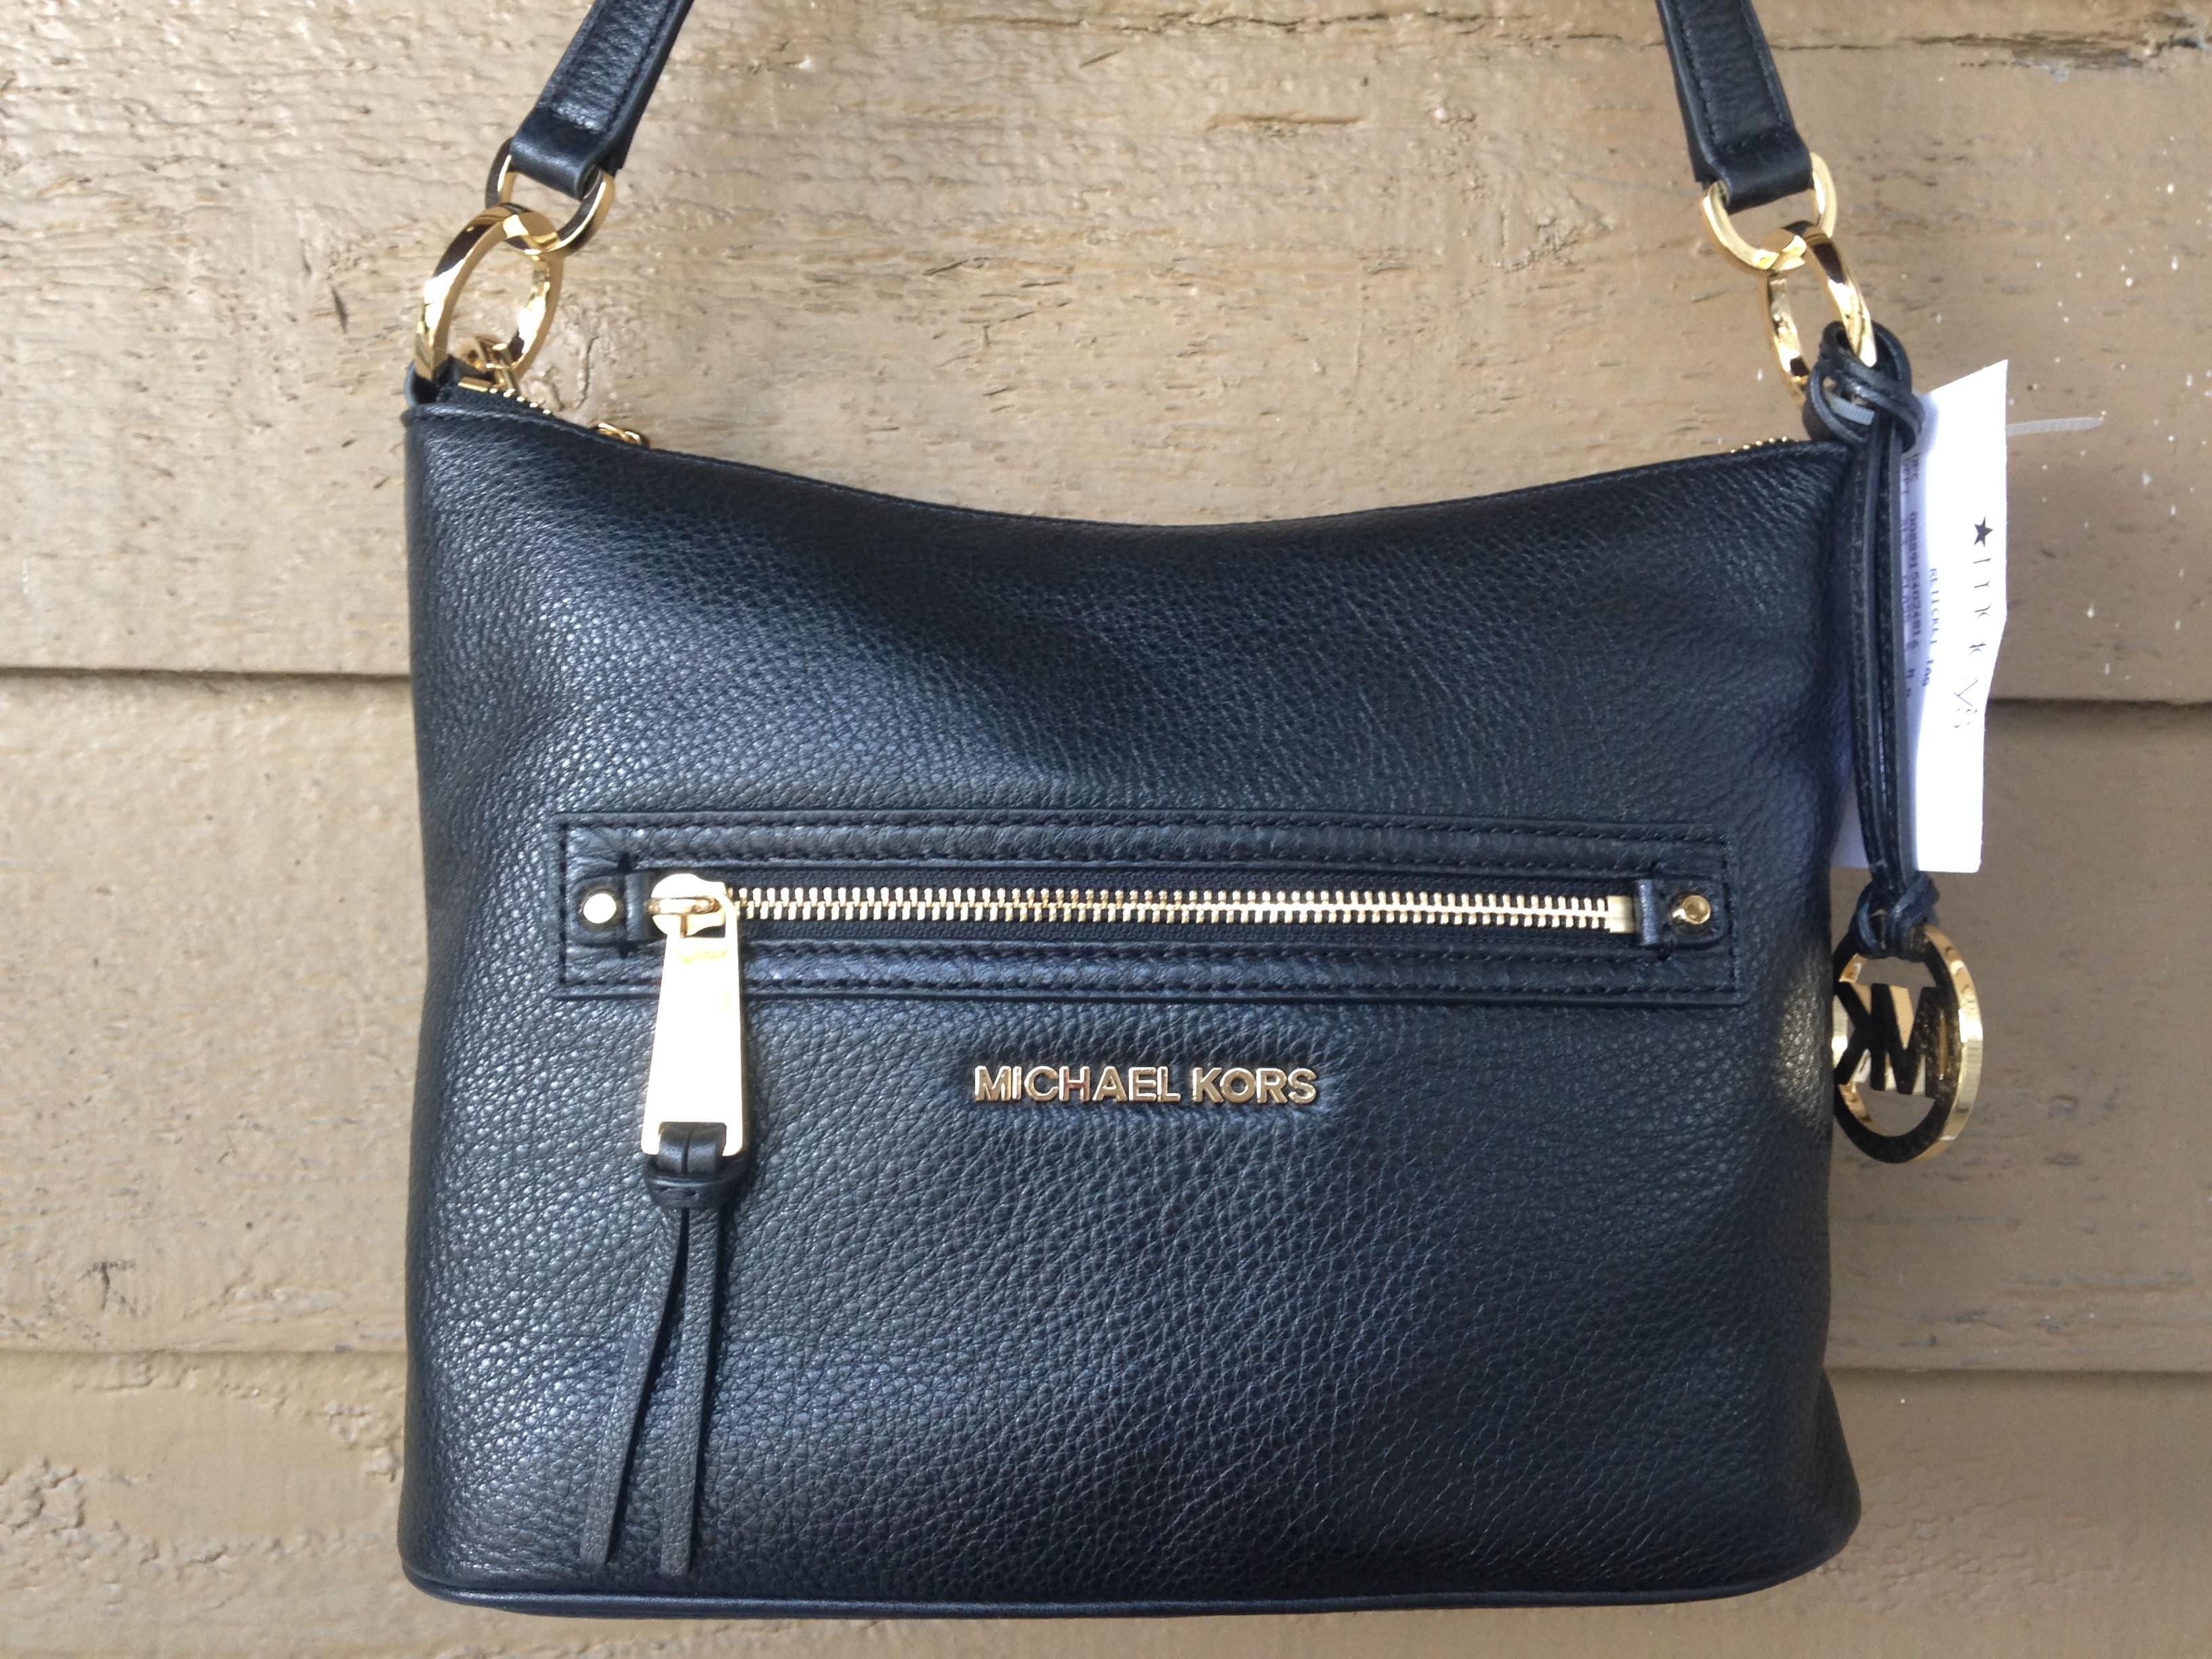 7fa15f1320c09 ... shopping michael kors shoulder bag. b4a7e 1dd92